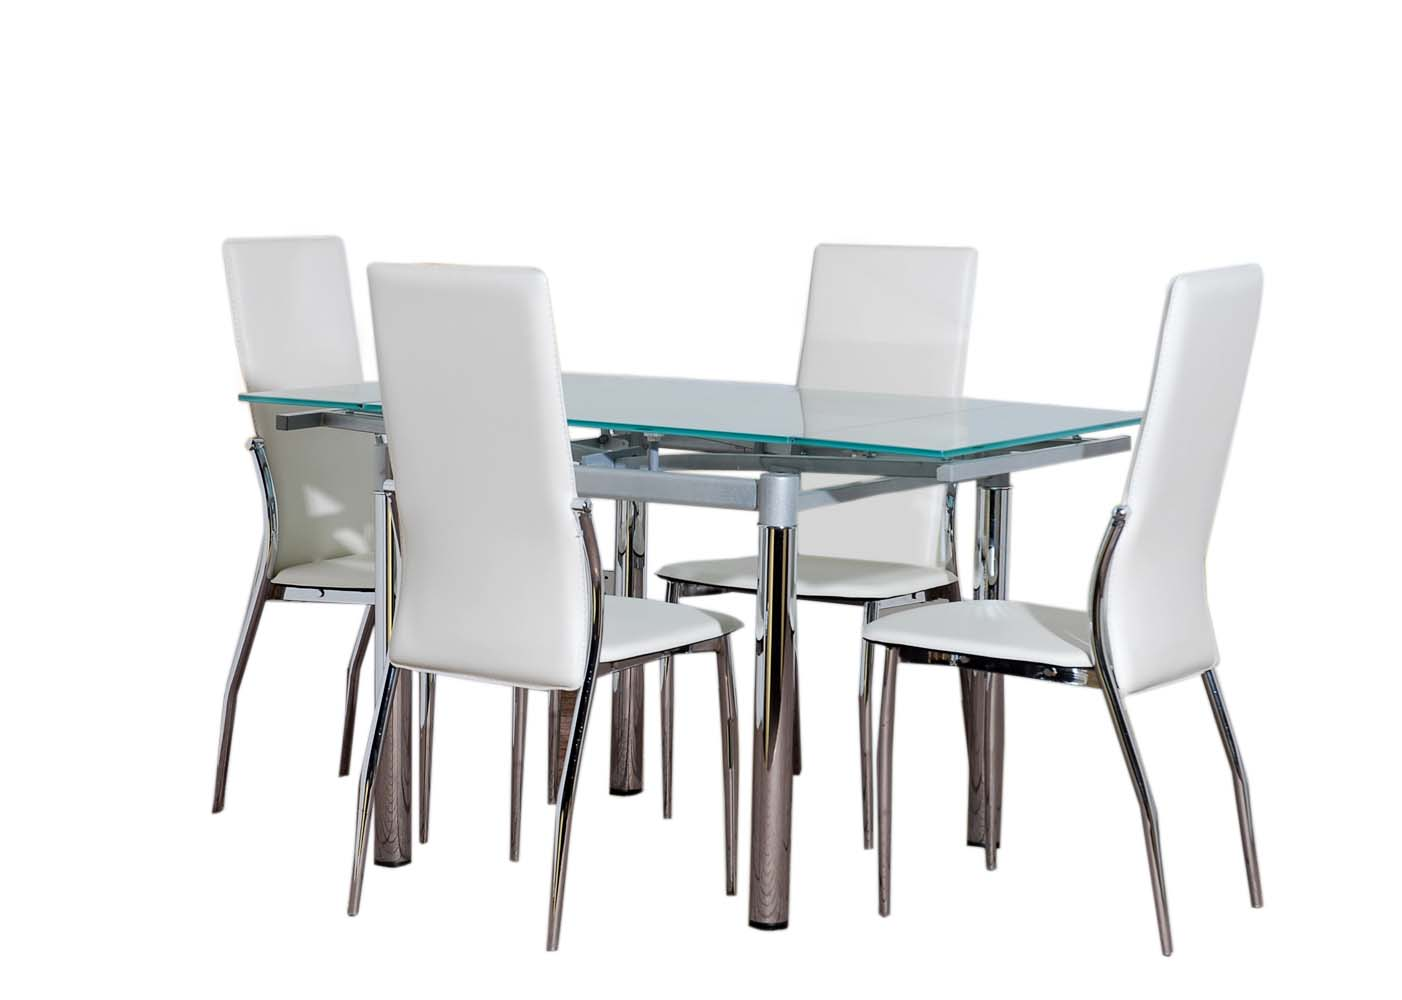 Glass dining table furniture and 4 cream chairs set ebay for Glass dining table and chairs